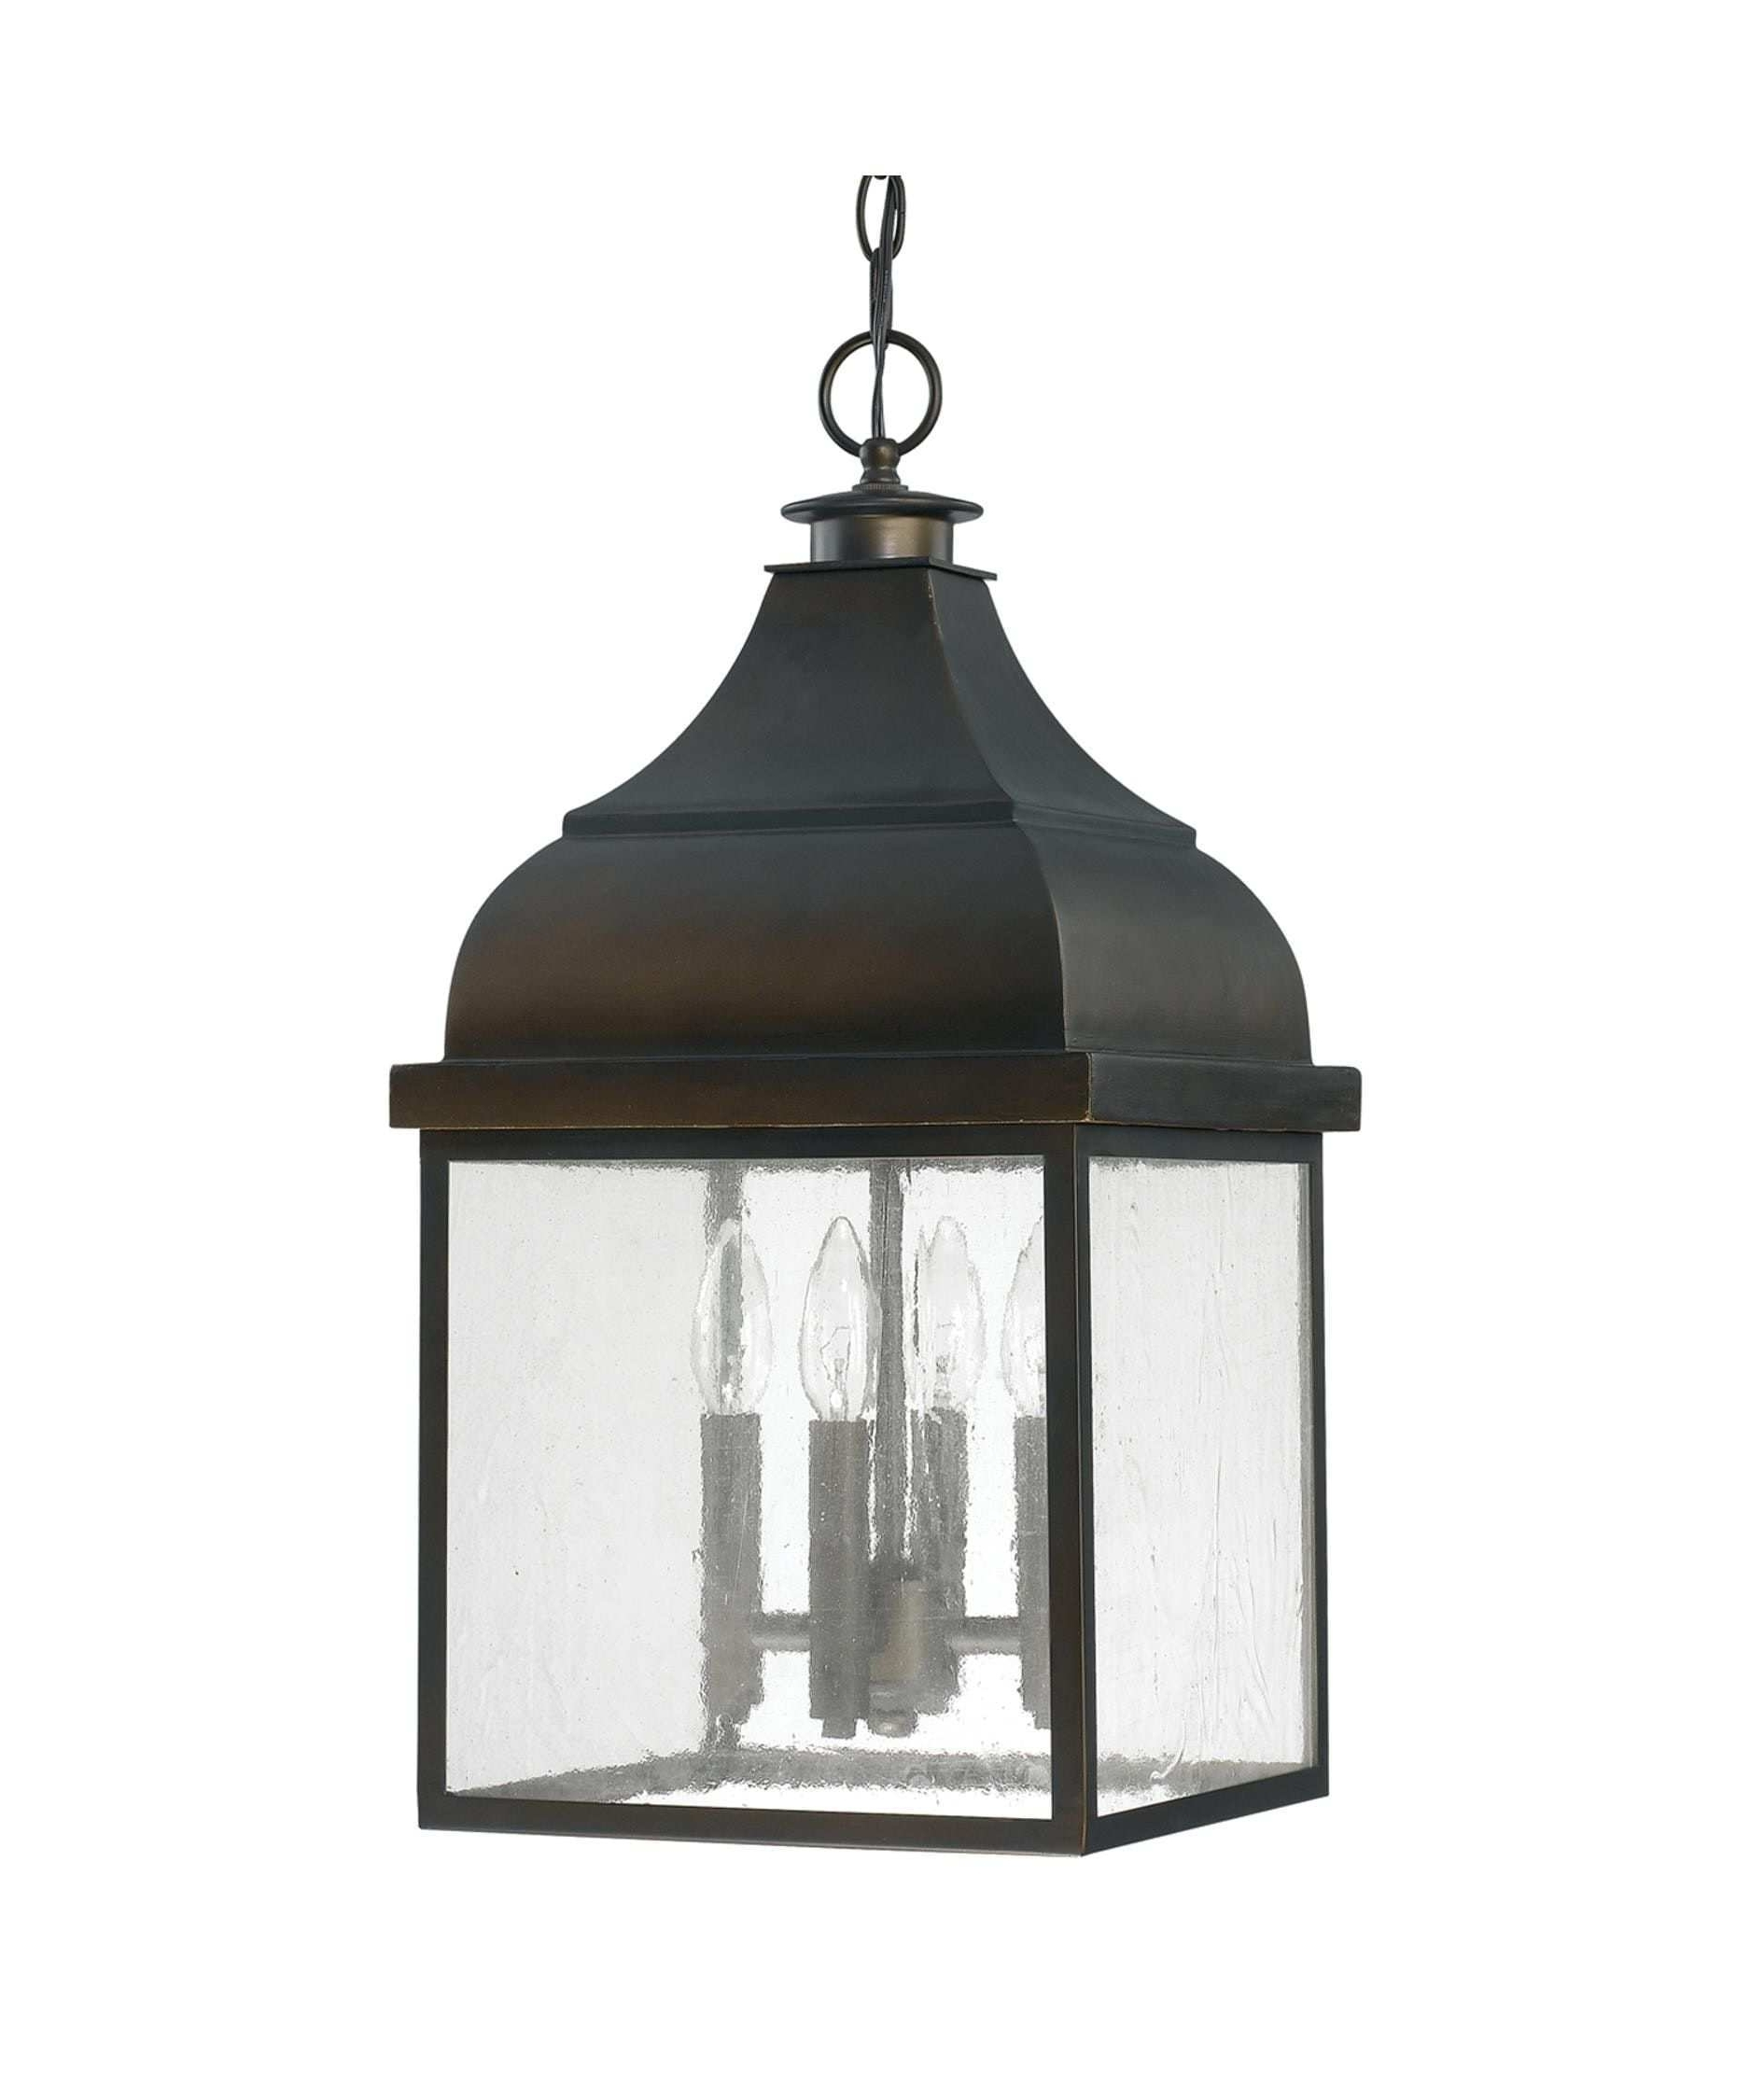 Outdoor And Garden String Lights At Wayfair For Preferred Wayfair Ceiling Light Fixtures Beautiful Outdoor Hanging Light (View 10 of 20)